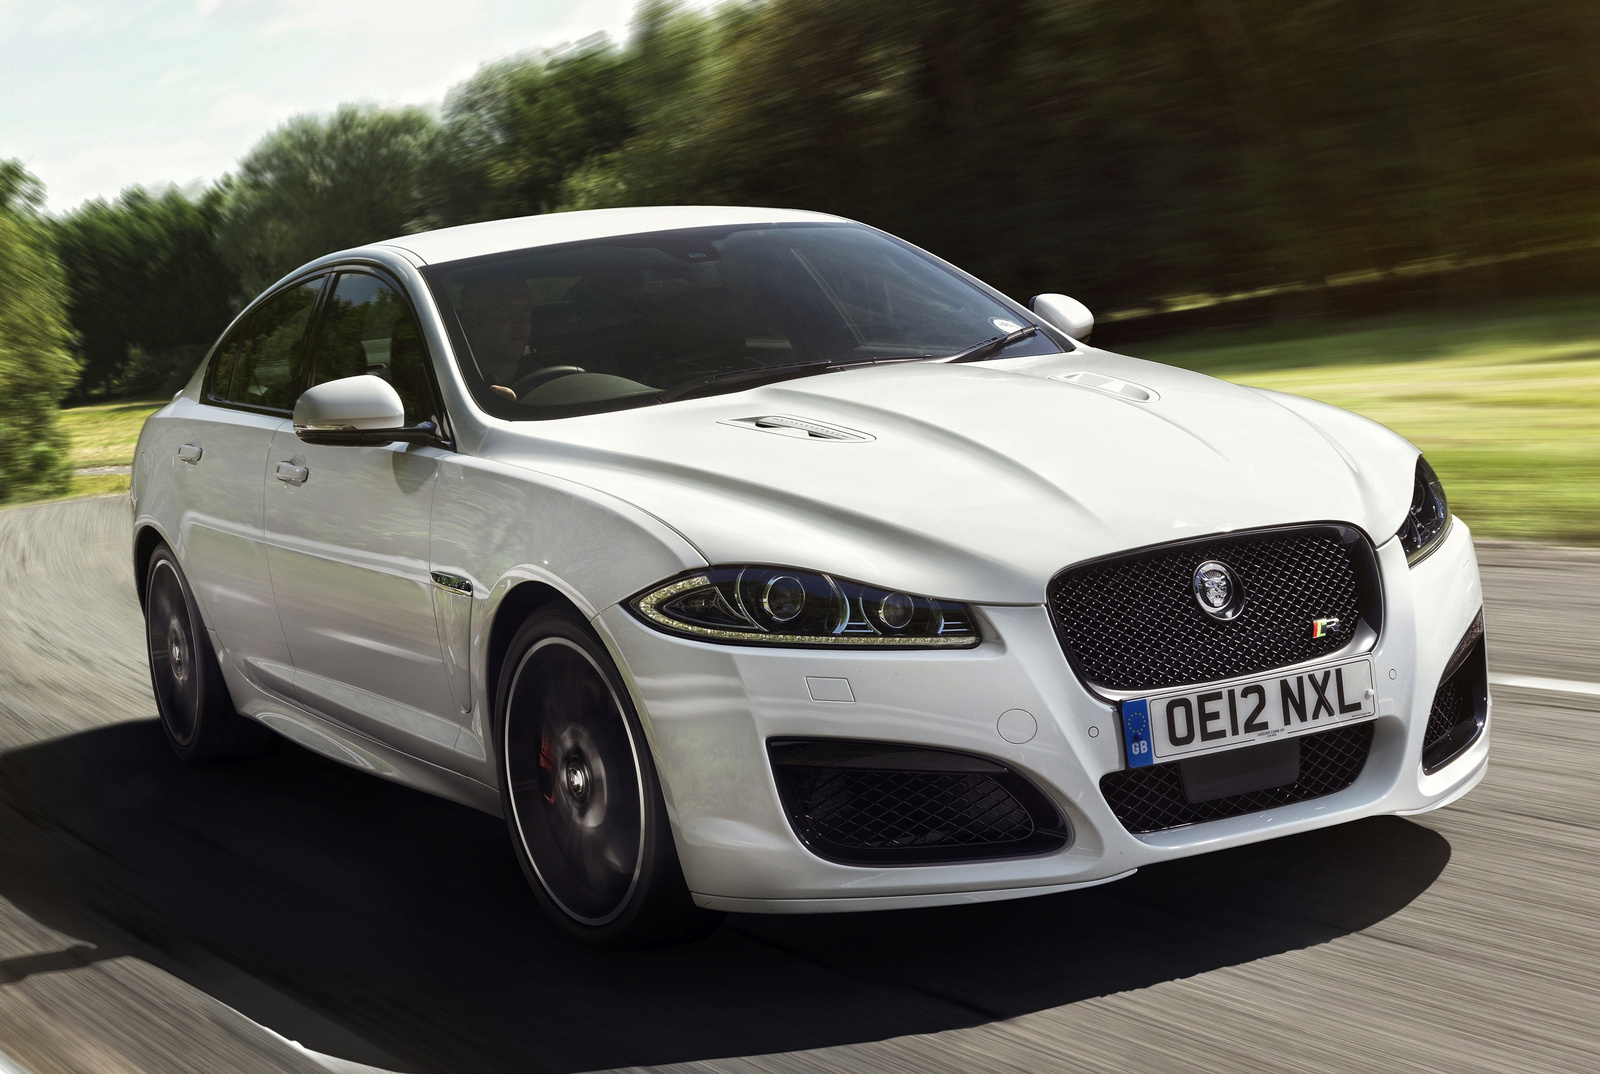 2014 jaguar xf - overview - cargurus